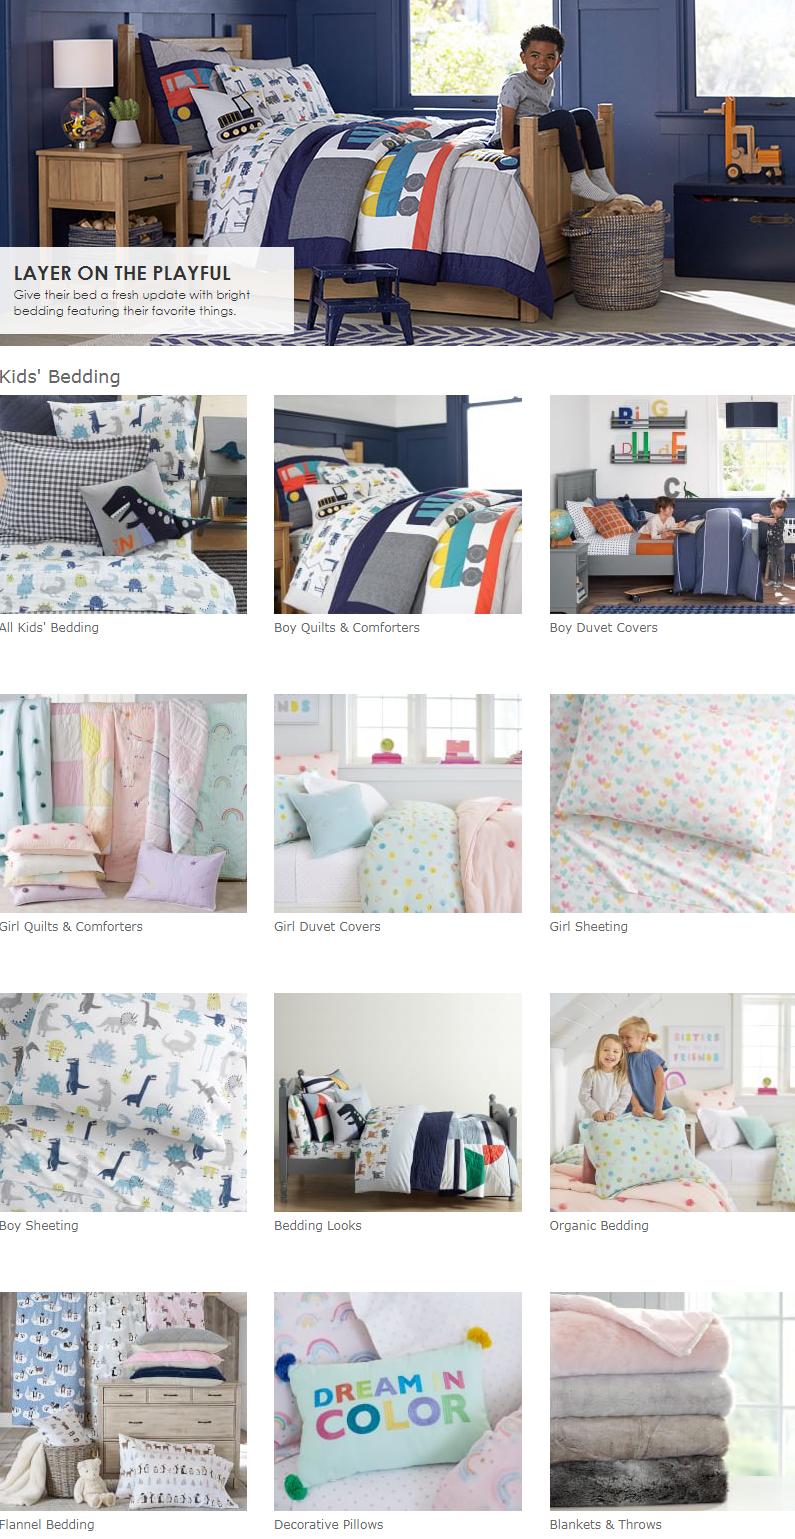 Give their bed a fresh update with bright bedding featuring their favorite things.